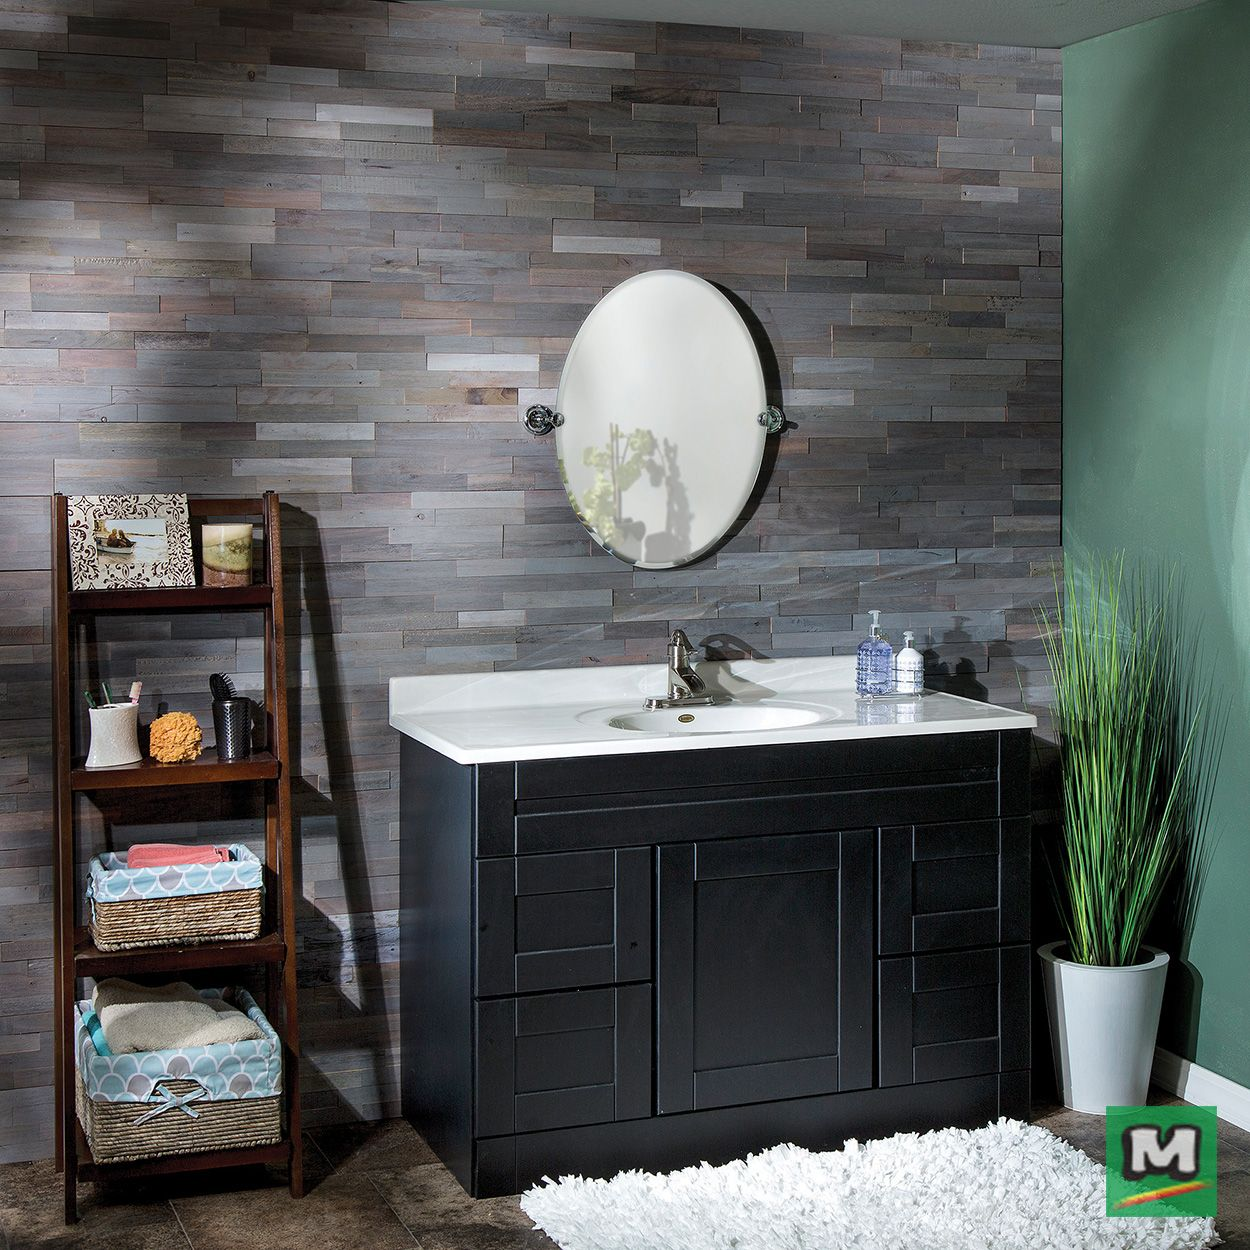 Aspect Peel & Stick Tiles will enrich your home décor with